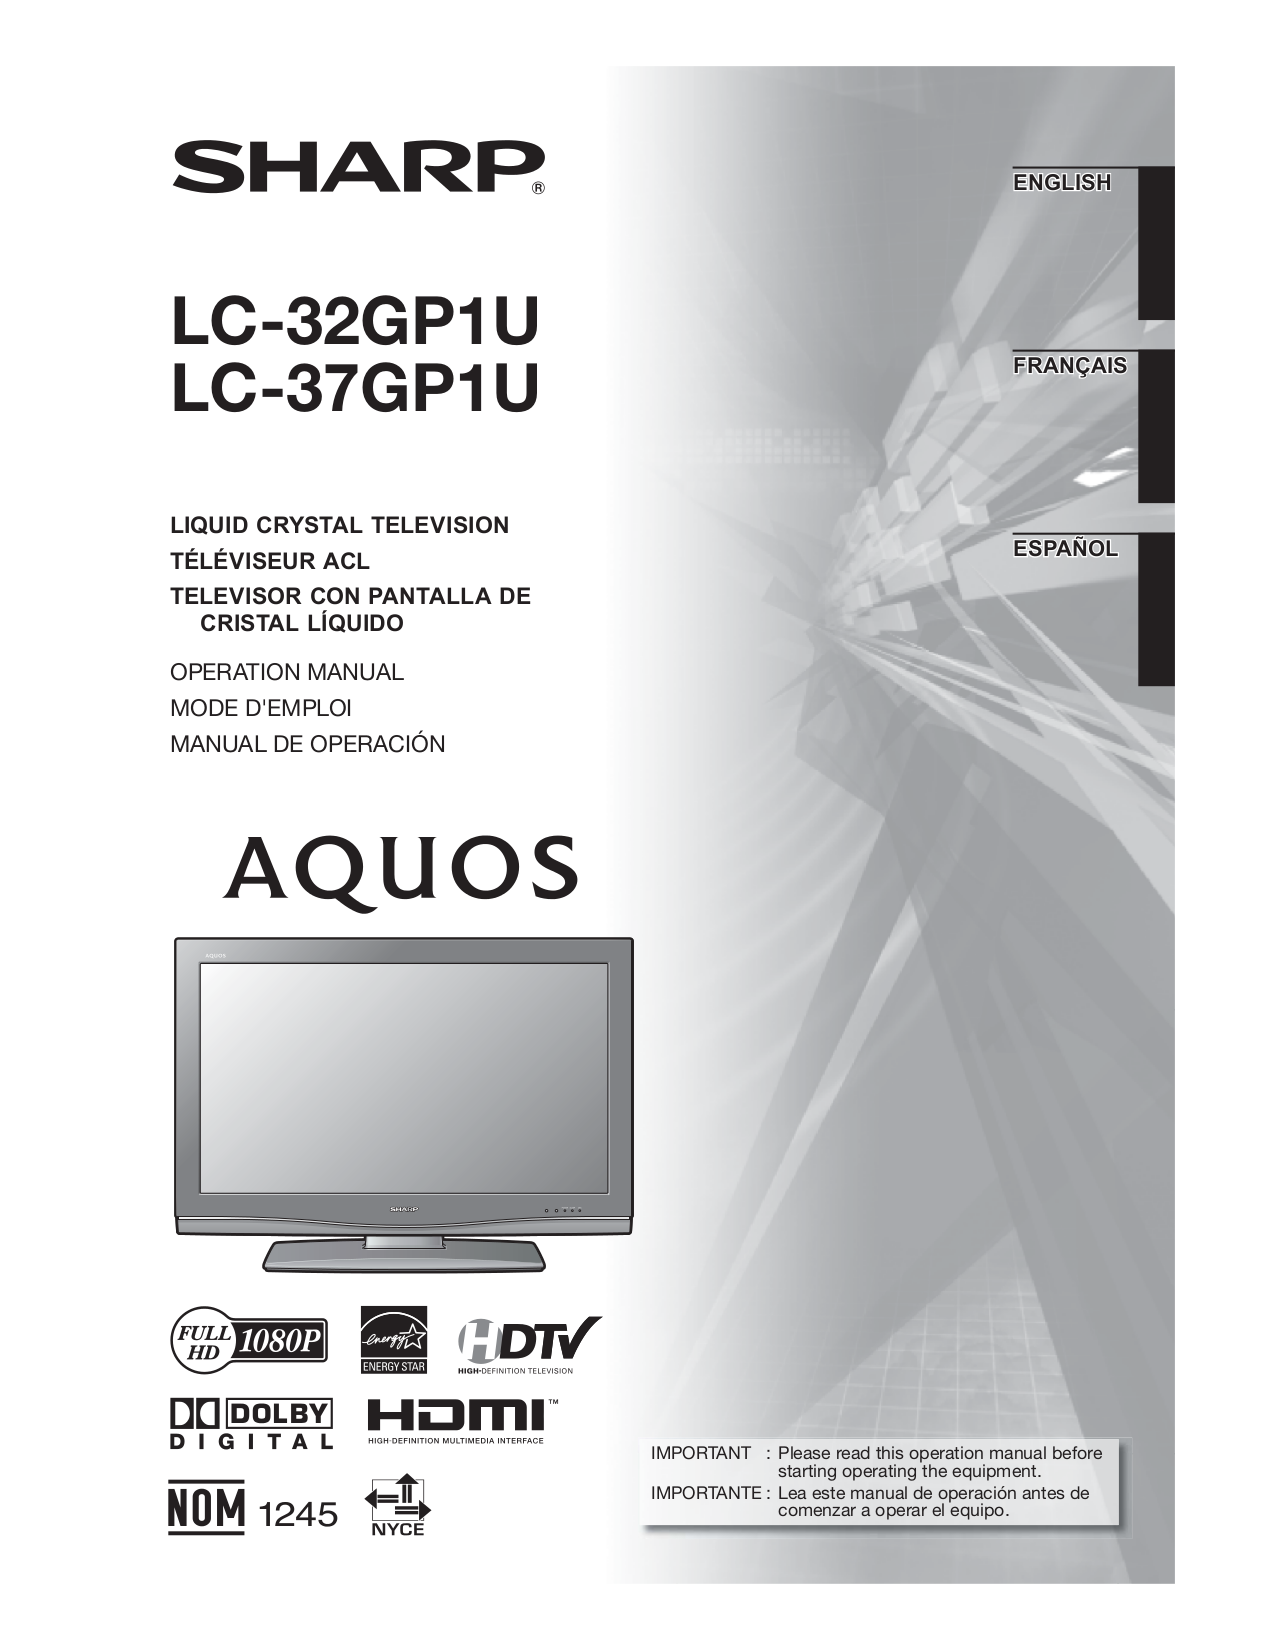 sharp aquos manual 52 browse manual guides u2022 rh trufflefries co